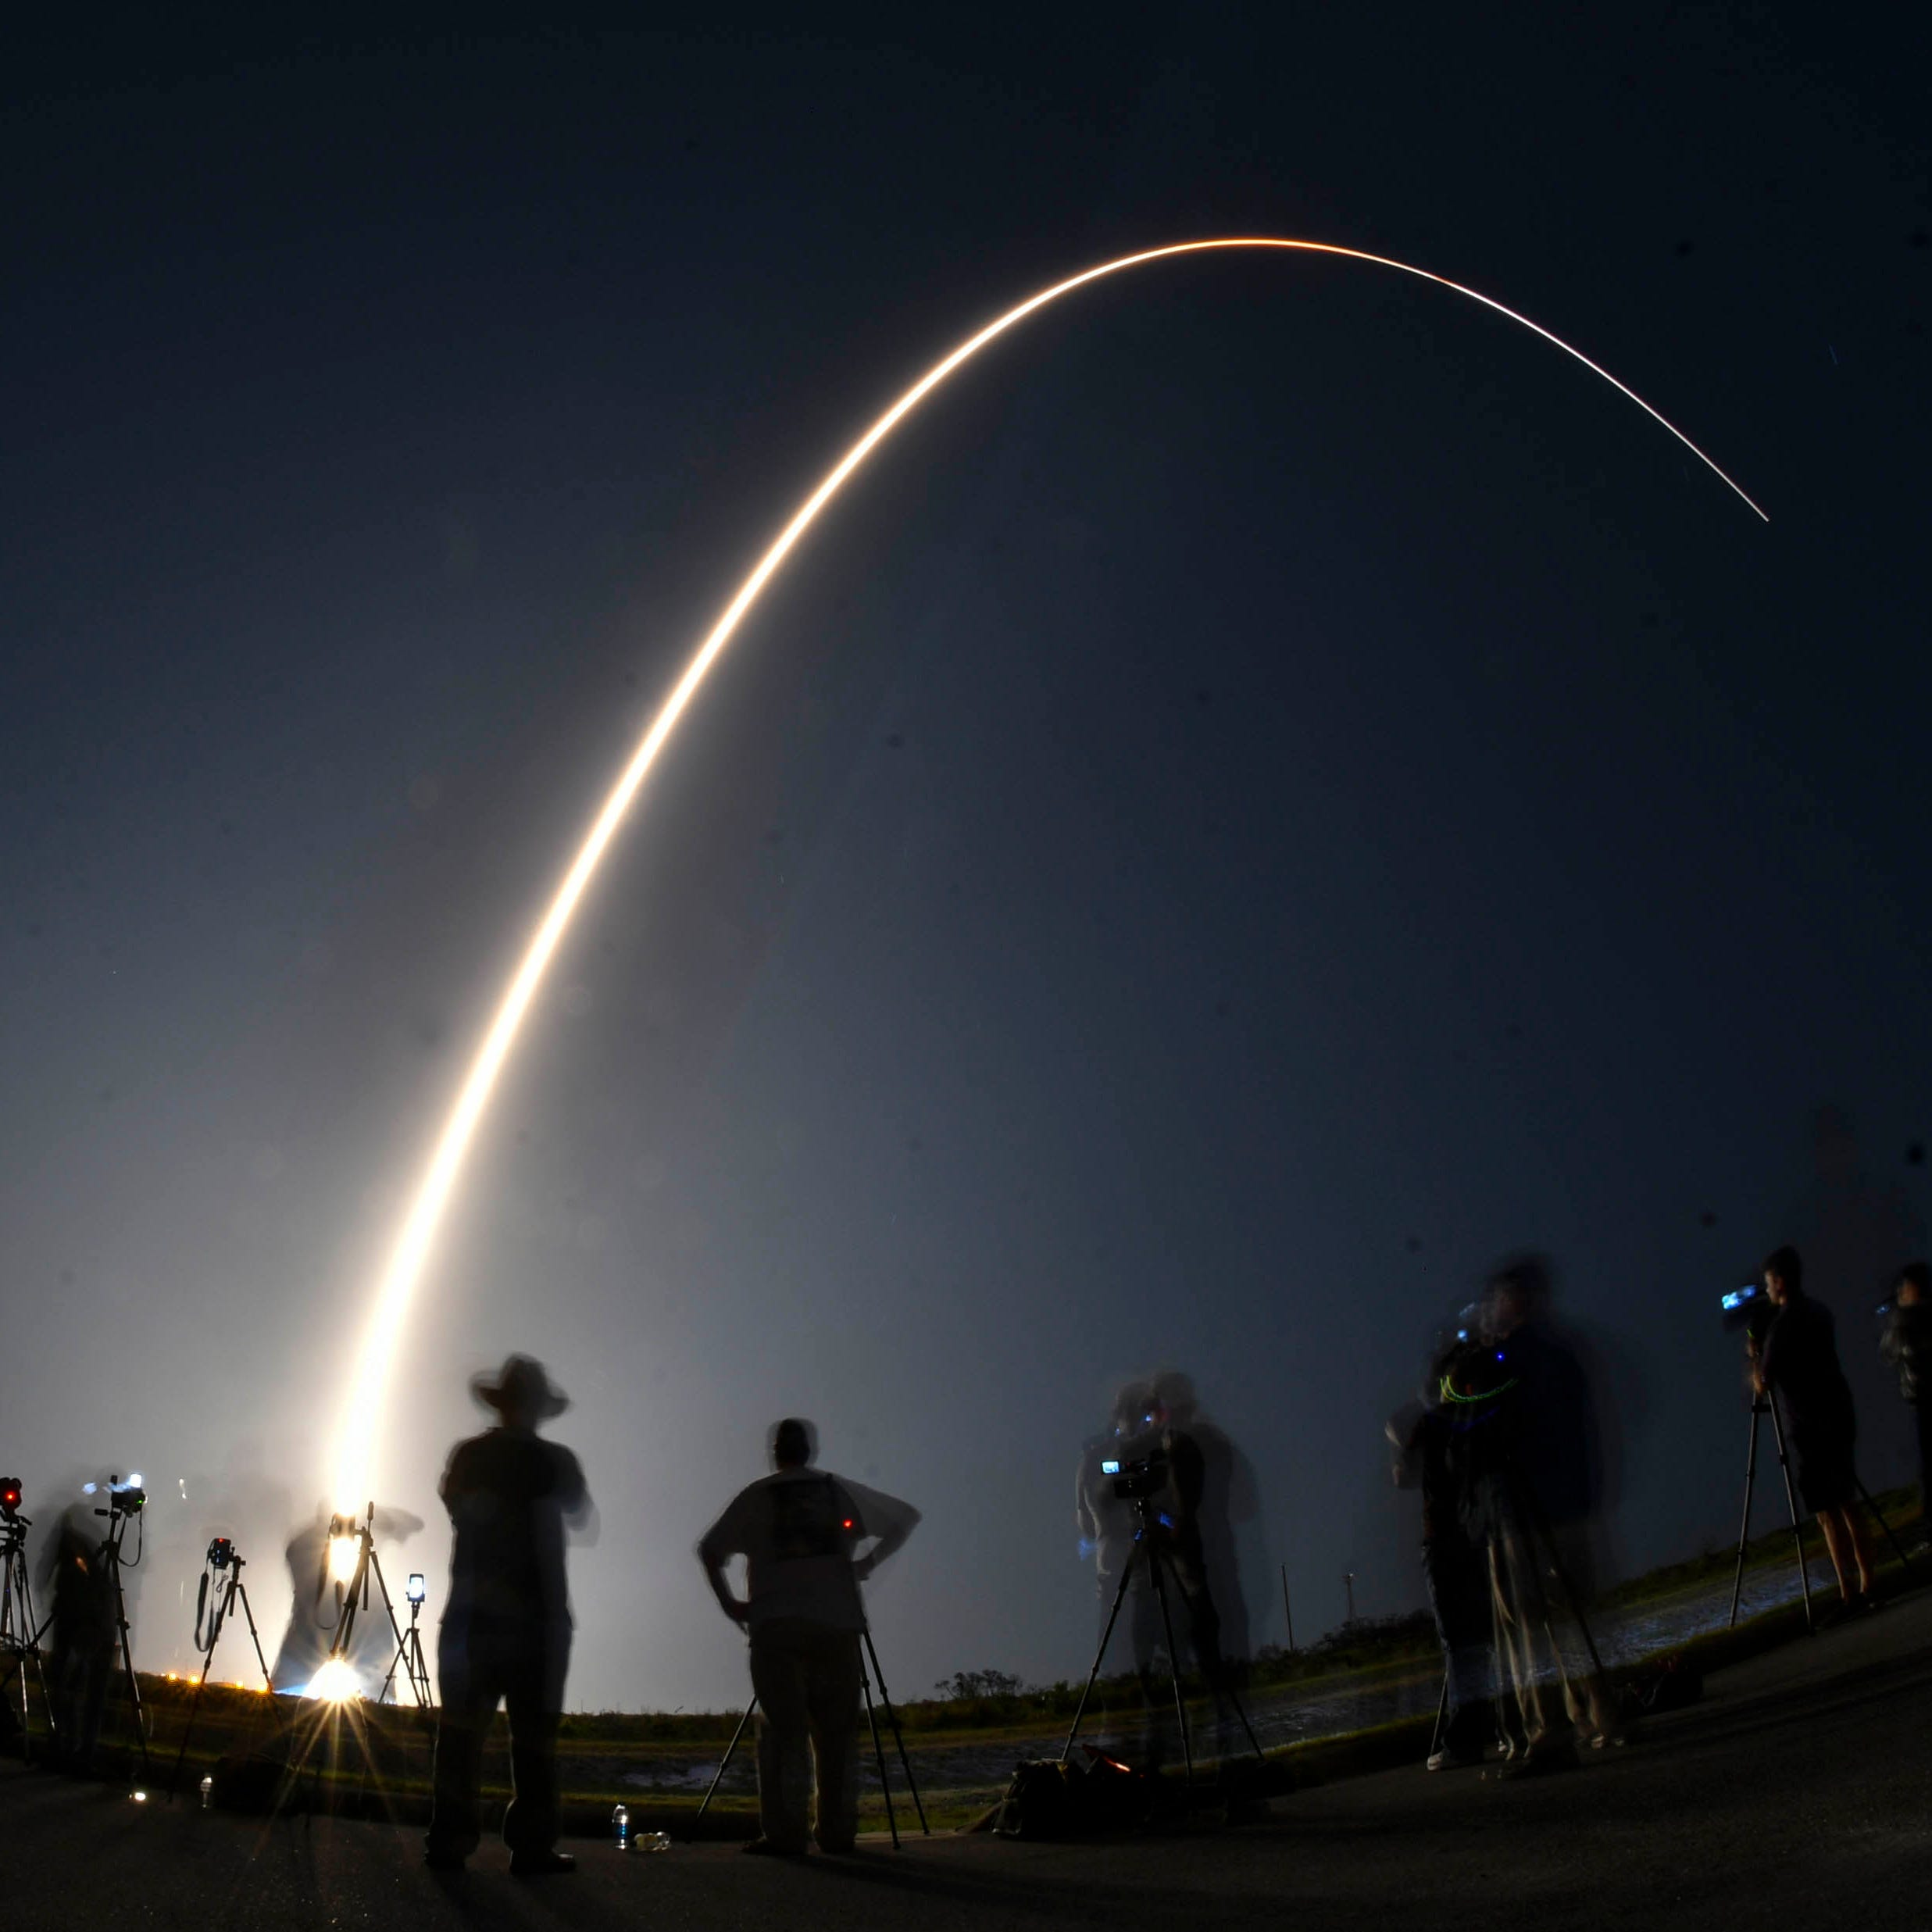 Best space photos of the week: ULA's Delta IV launch